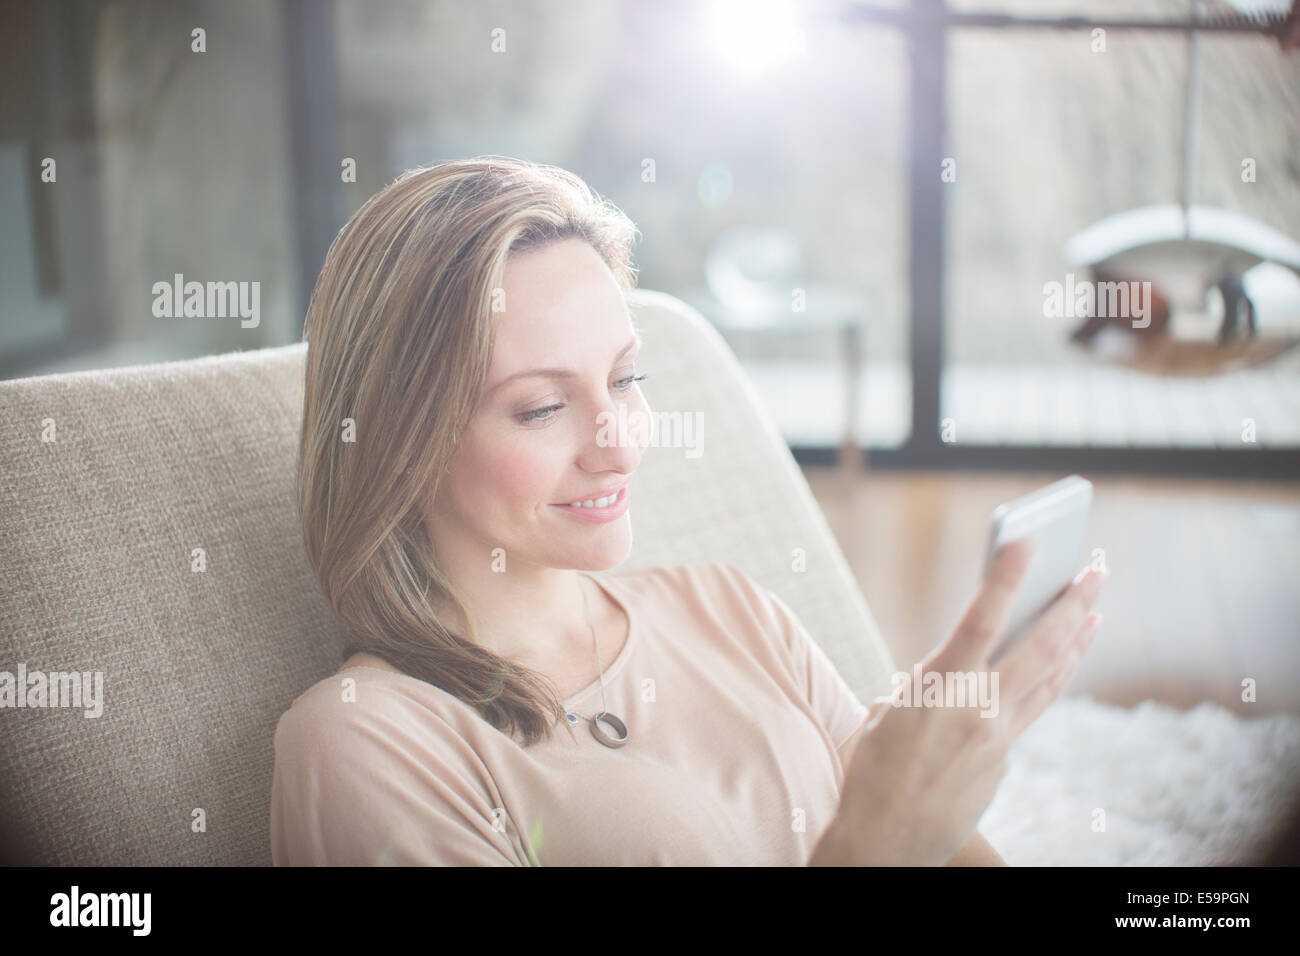 Woman using cell phone on sofa - Stock Image